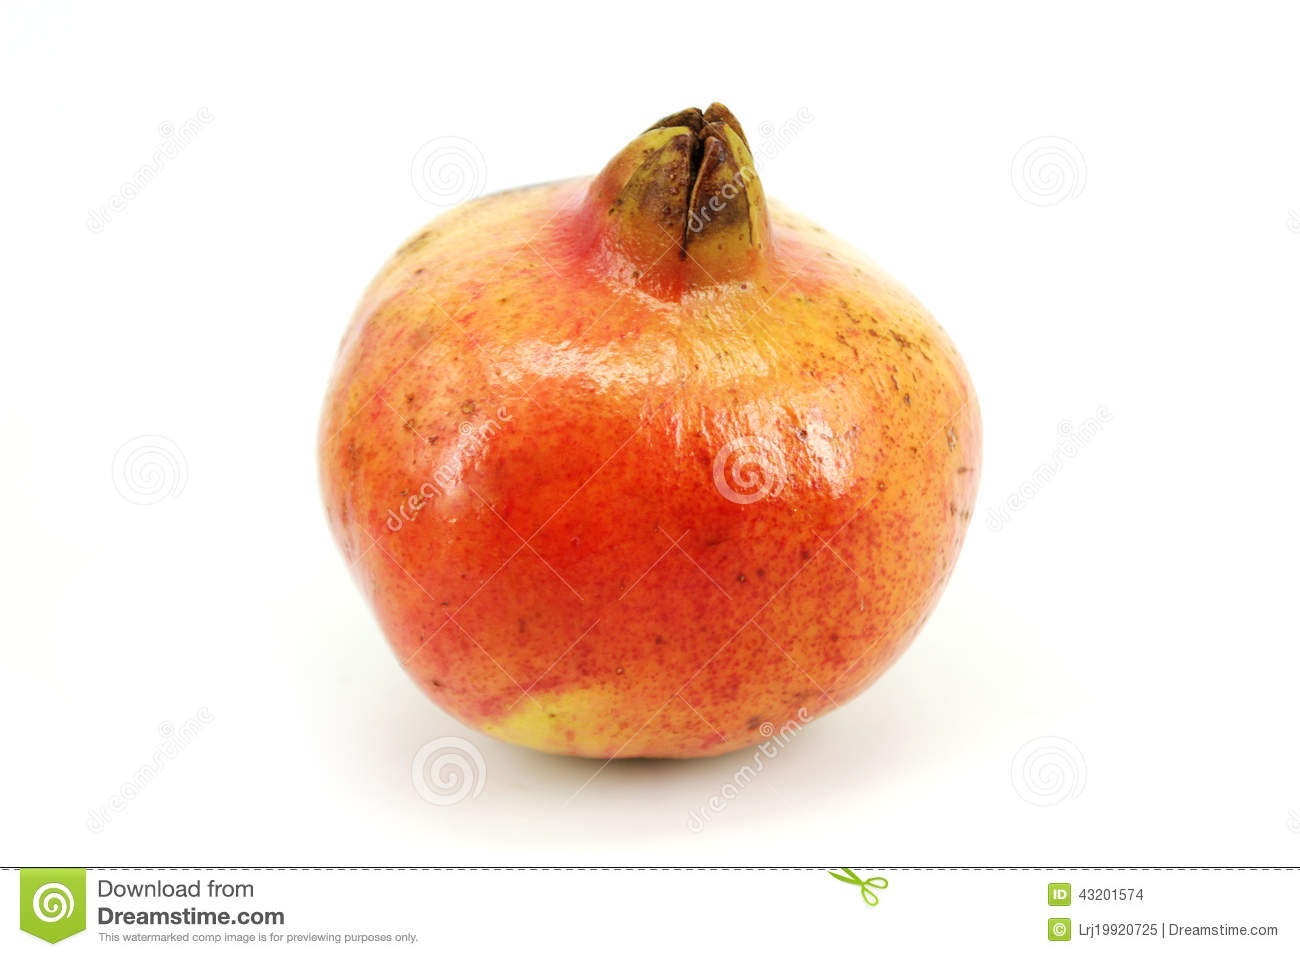 Download Granatäpple arkivfoto. Bild av bär, horisontal, brigham - 43201574